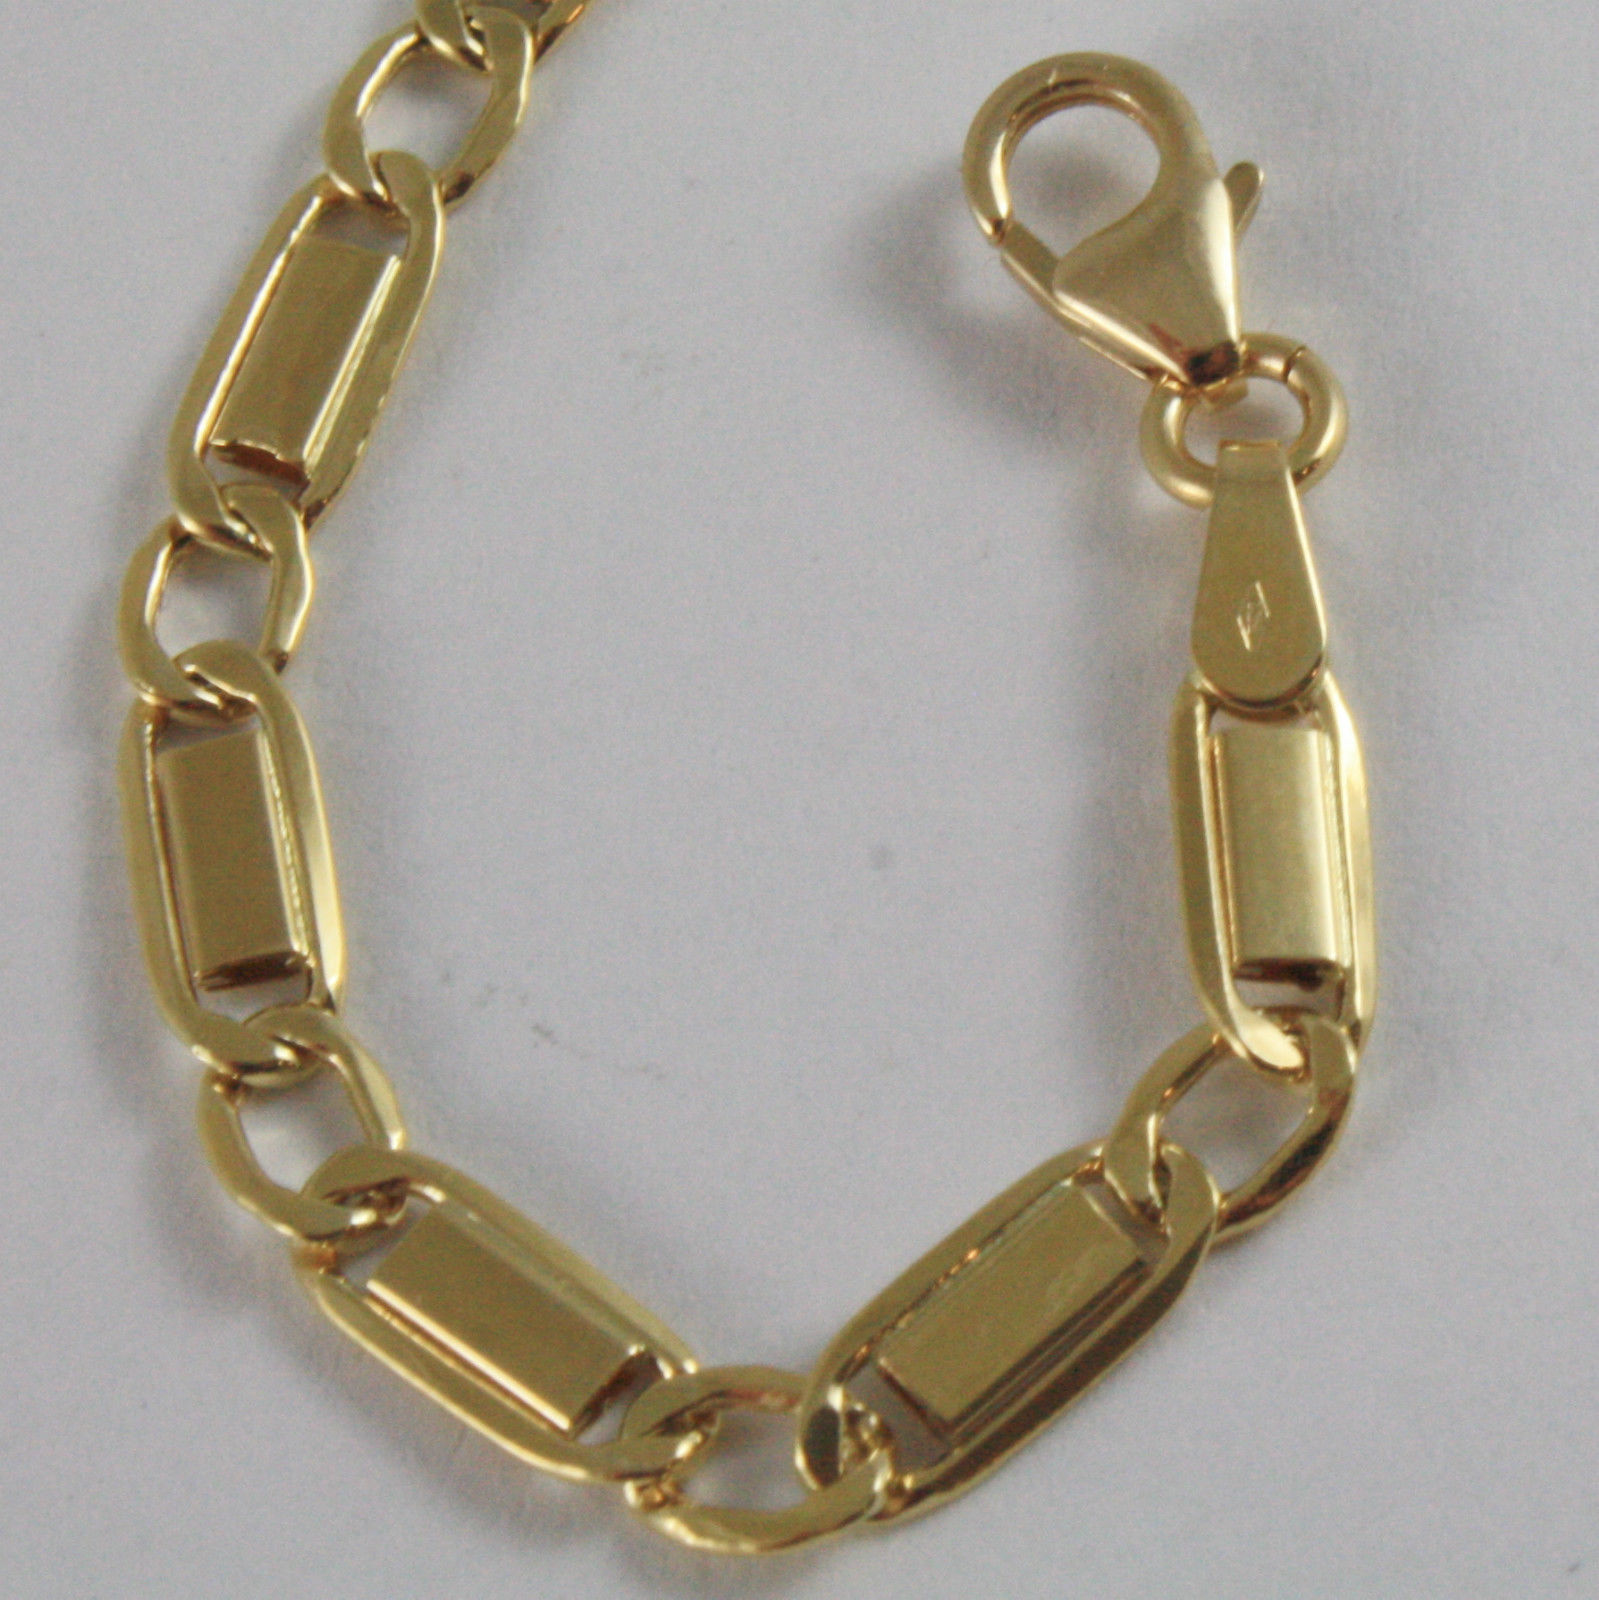 SOLID 18K YELLOW GOLD BRACELET WITH FLAT ALTERNATE 4 MM OVAL MESH, MADE IN ITALY